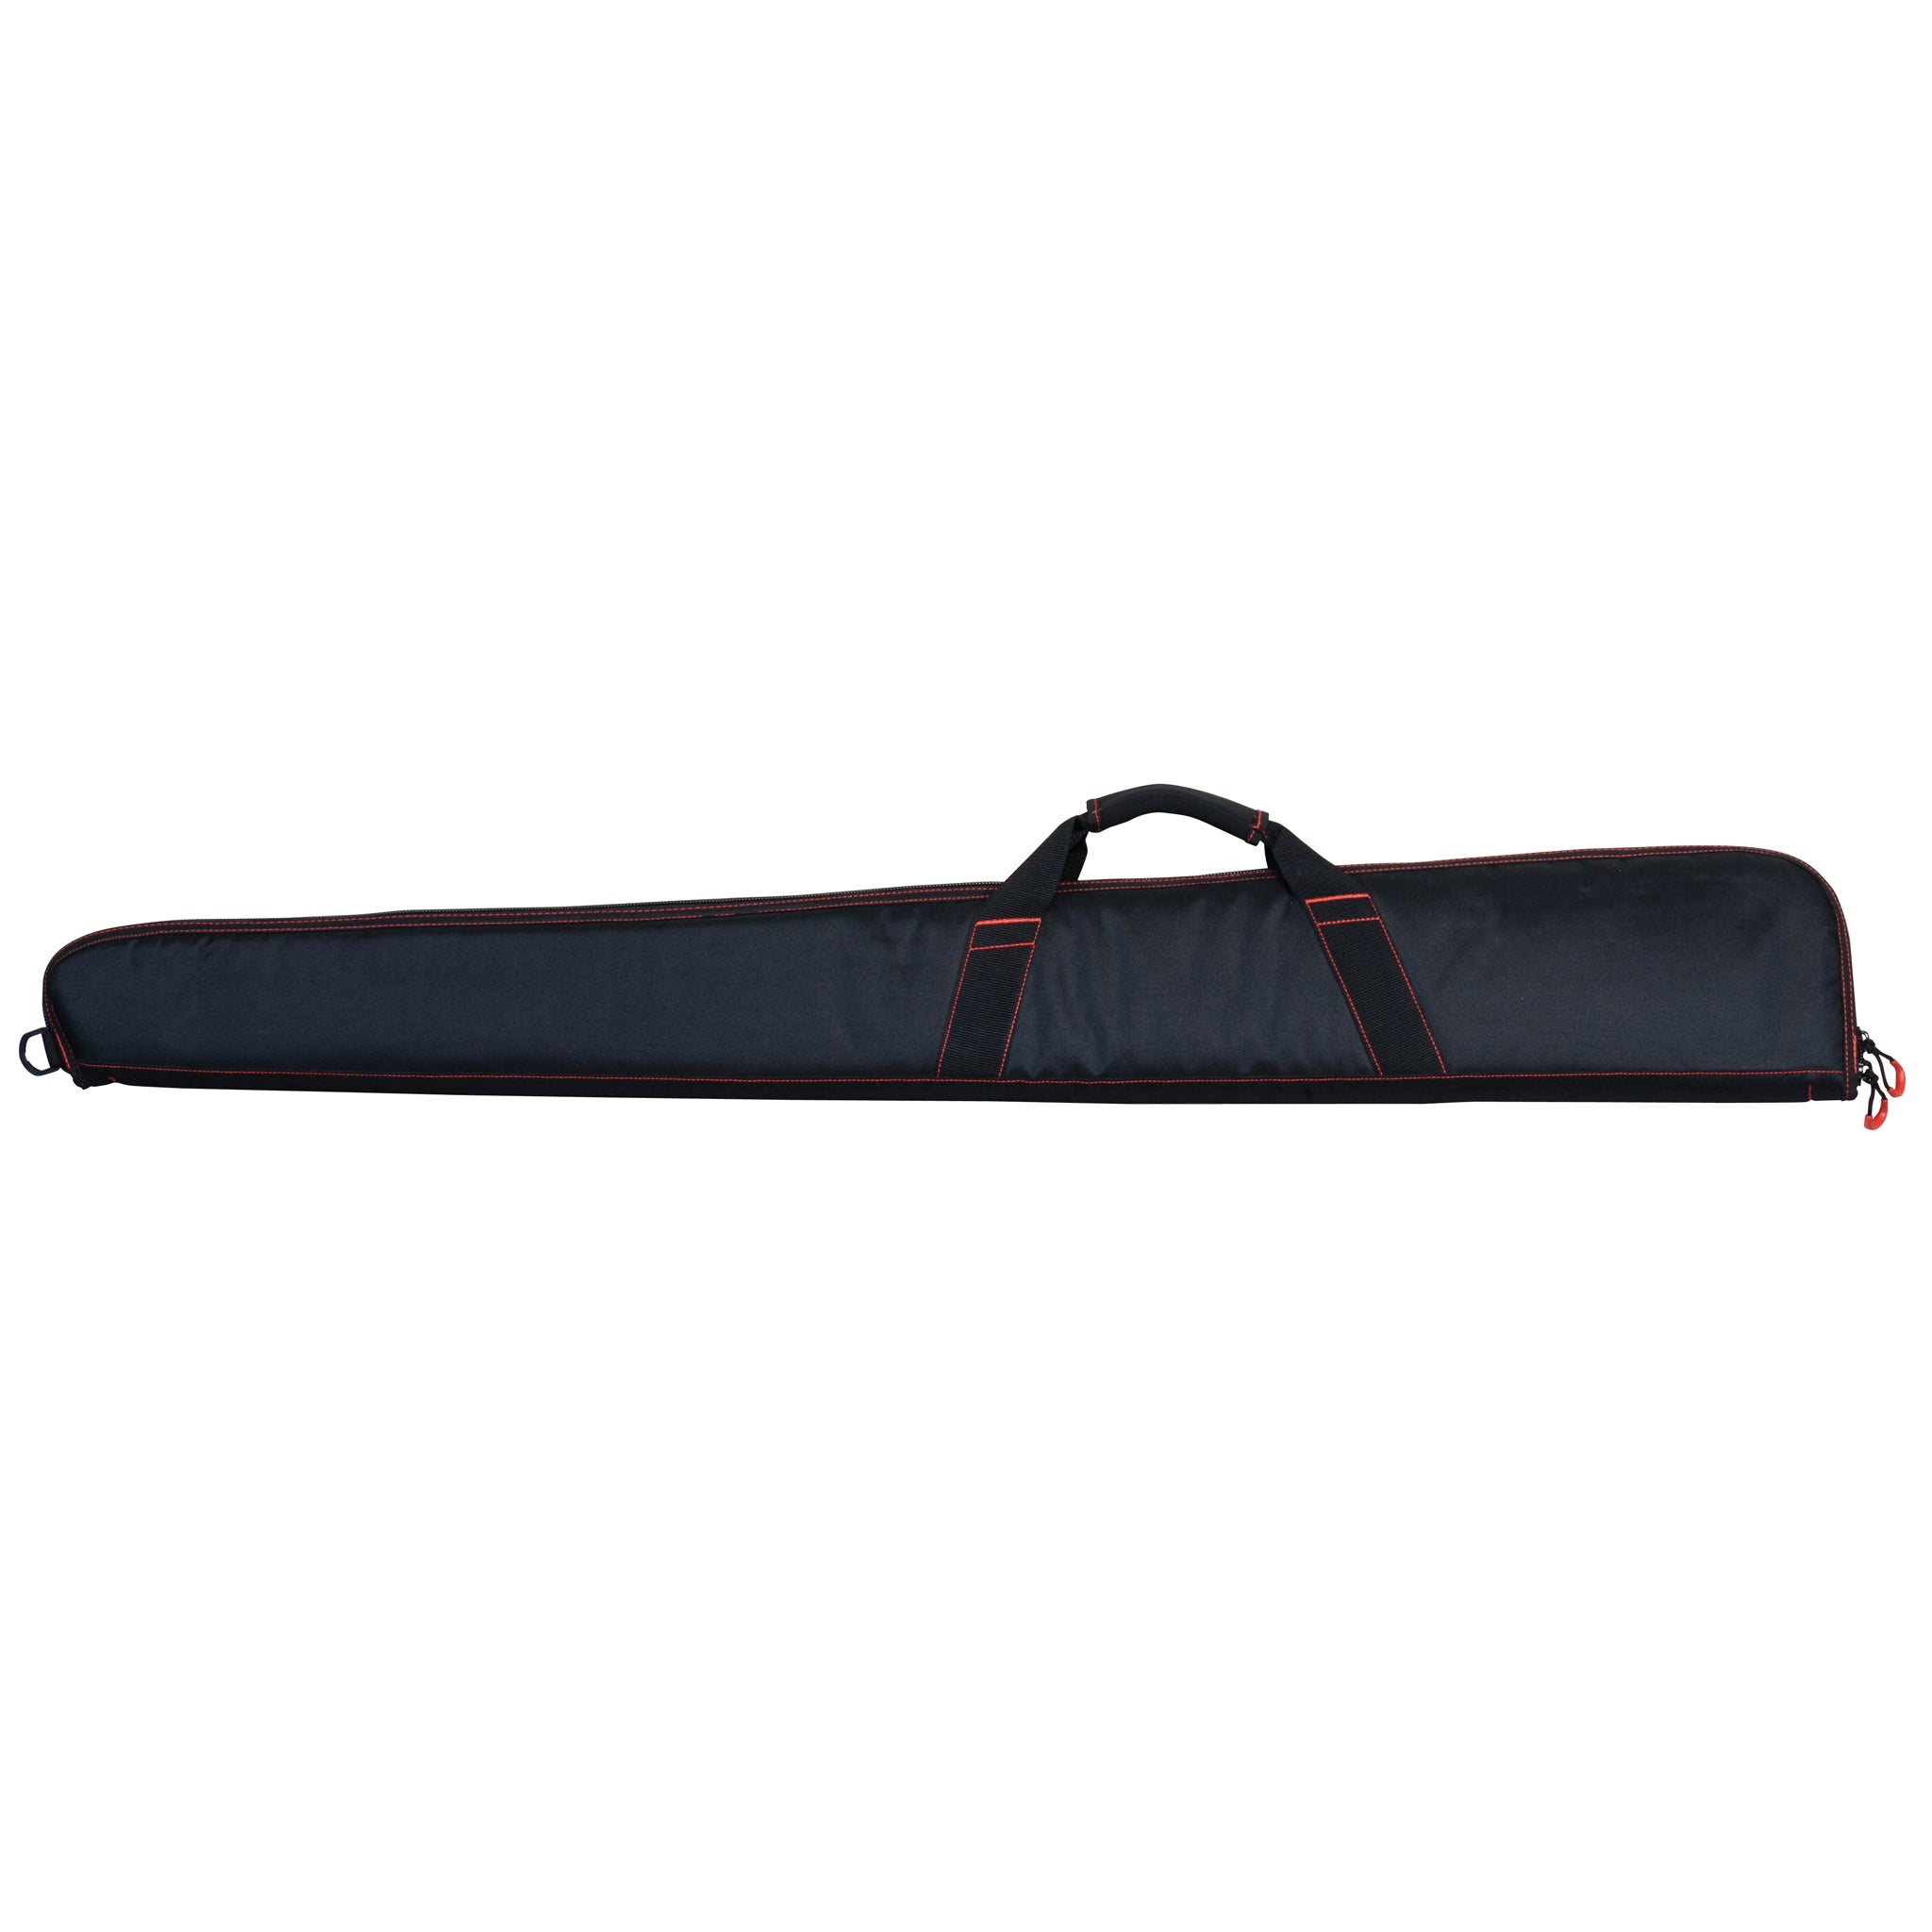 Durango Series Shotgun Case